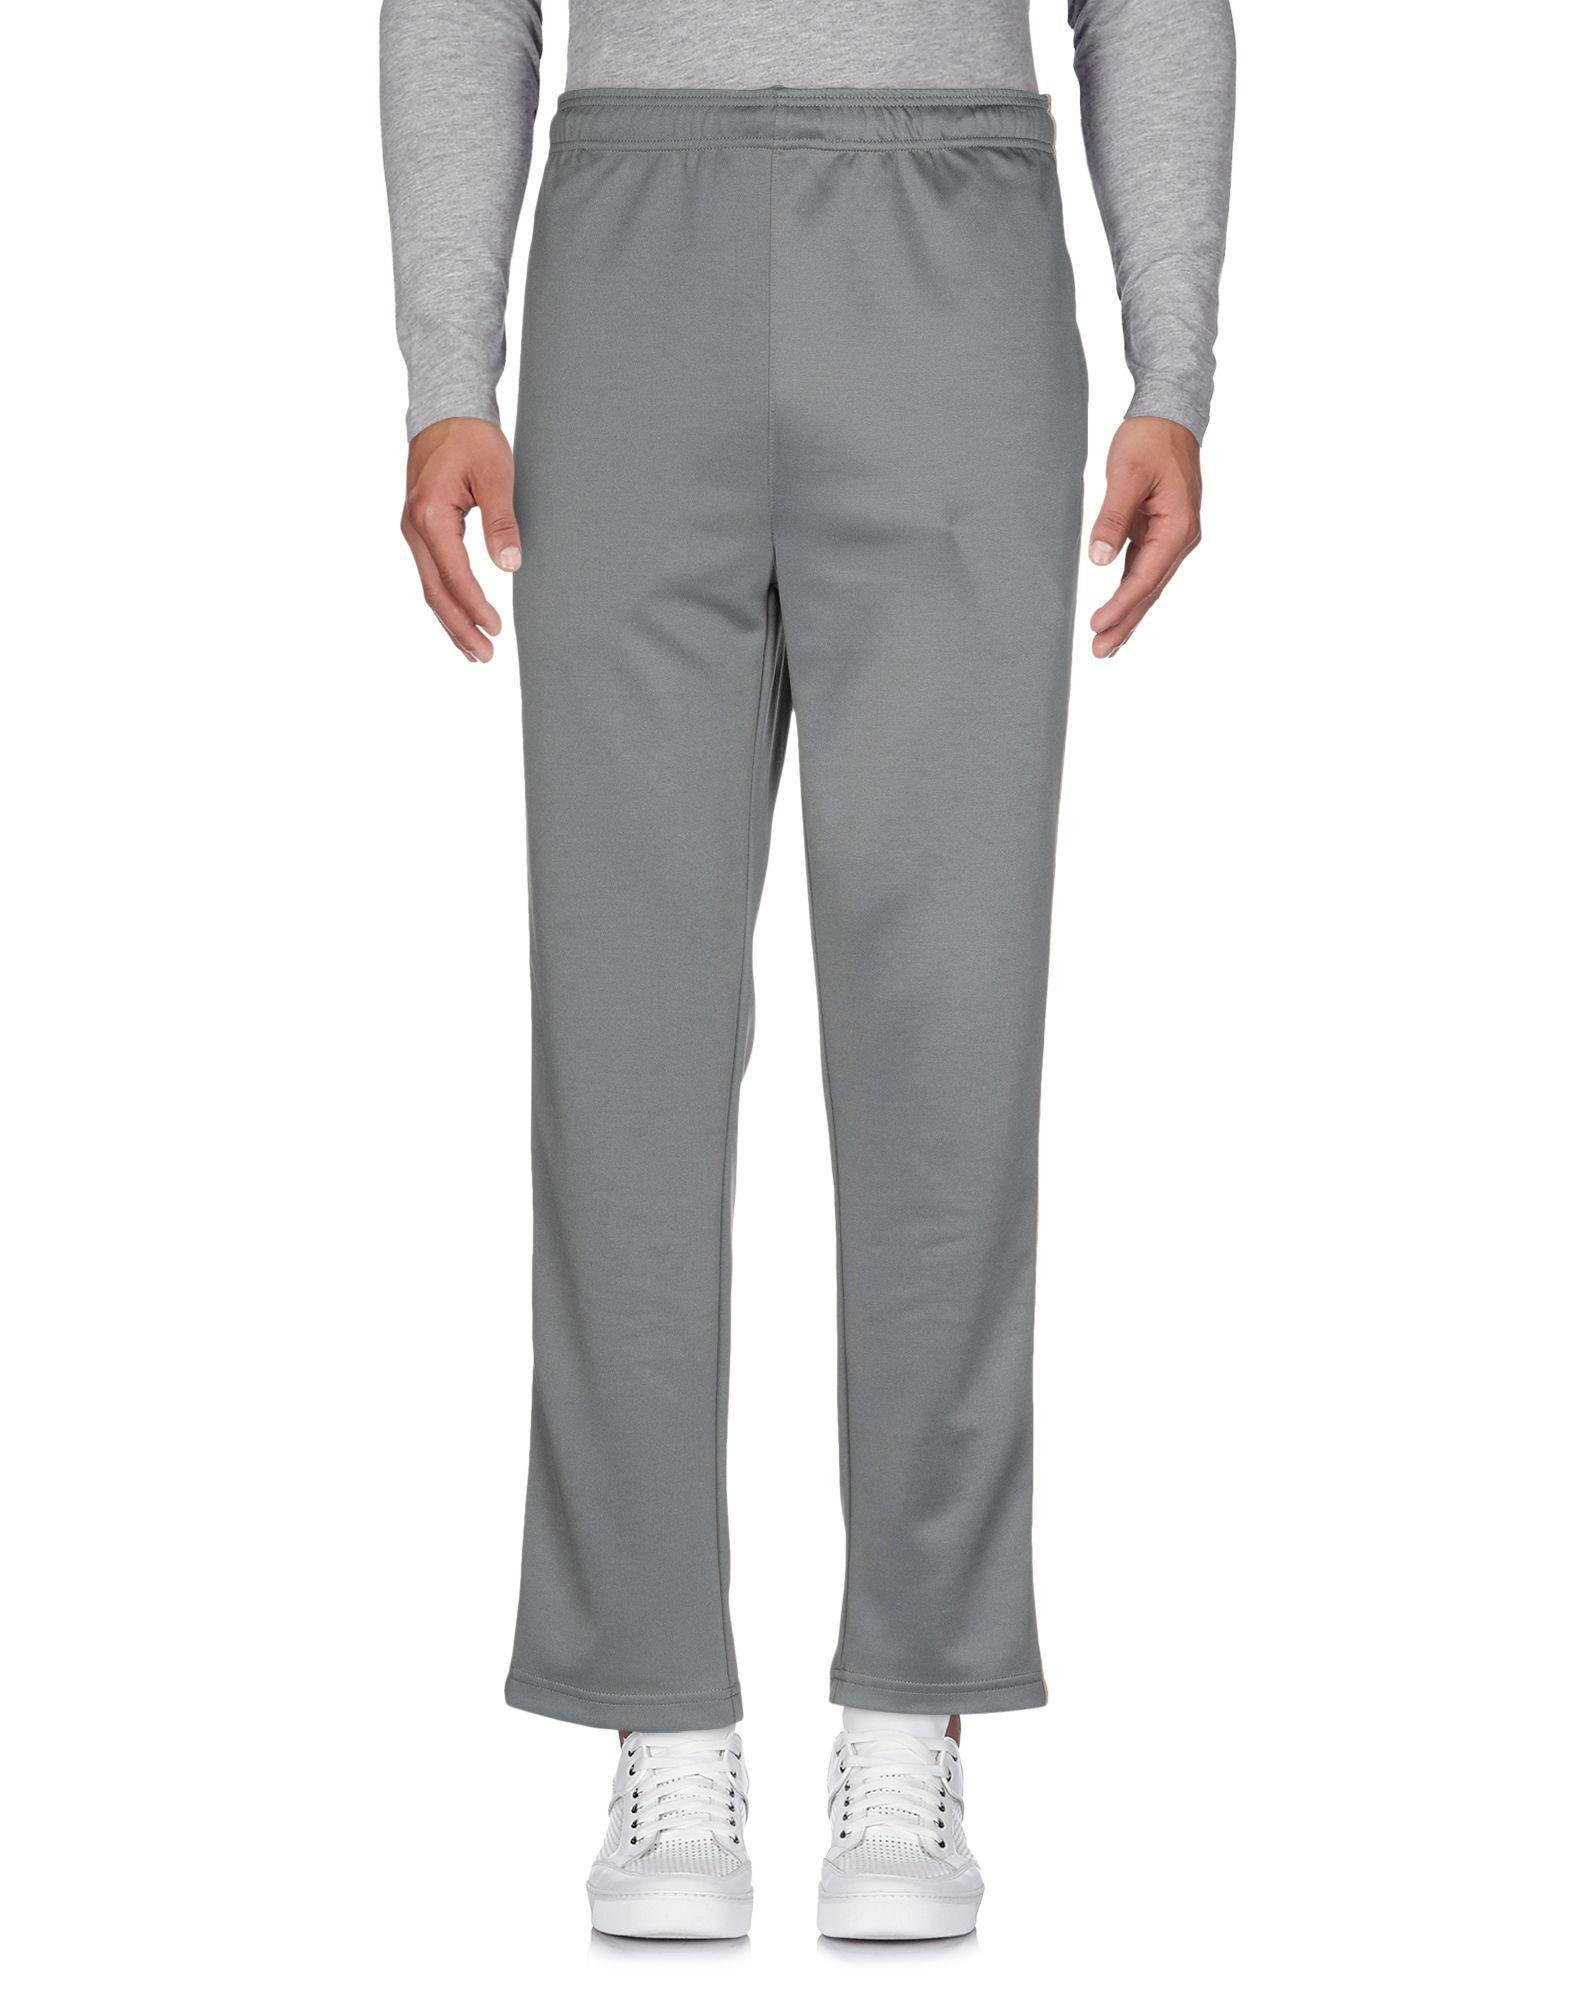 cdfb1d1815 Stussy Casual Trouser in Gray for Men - Lyst